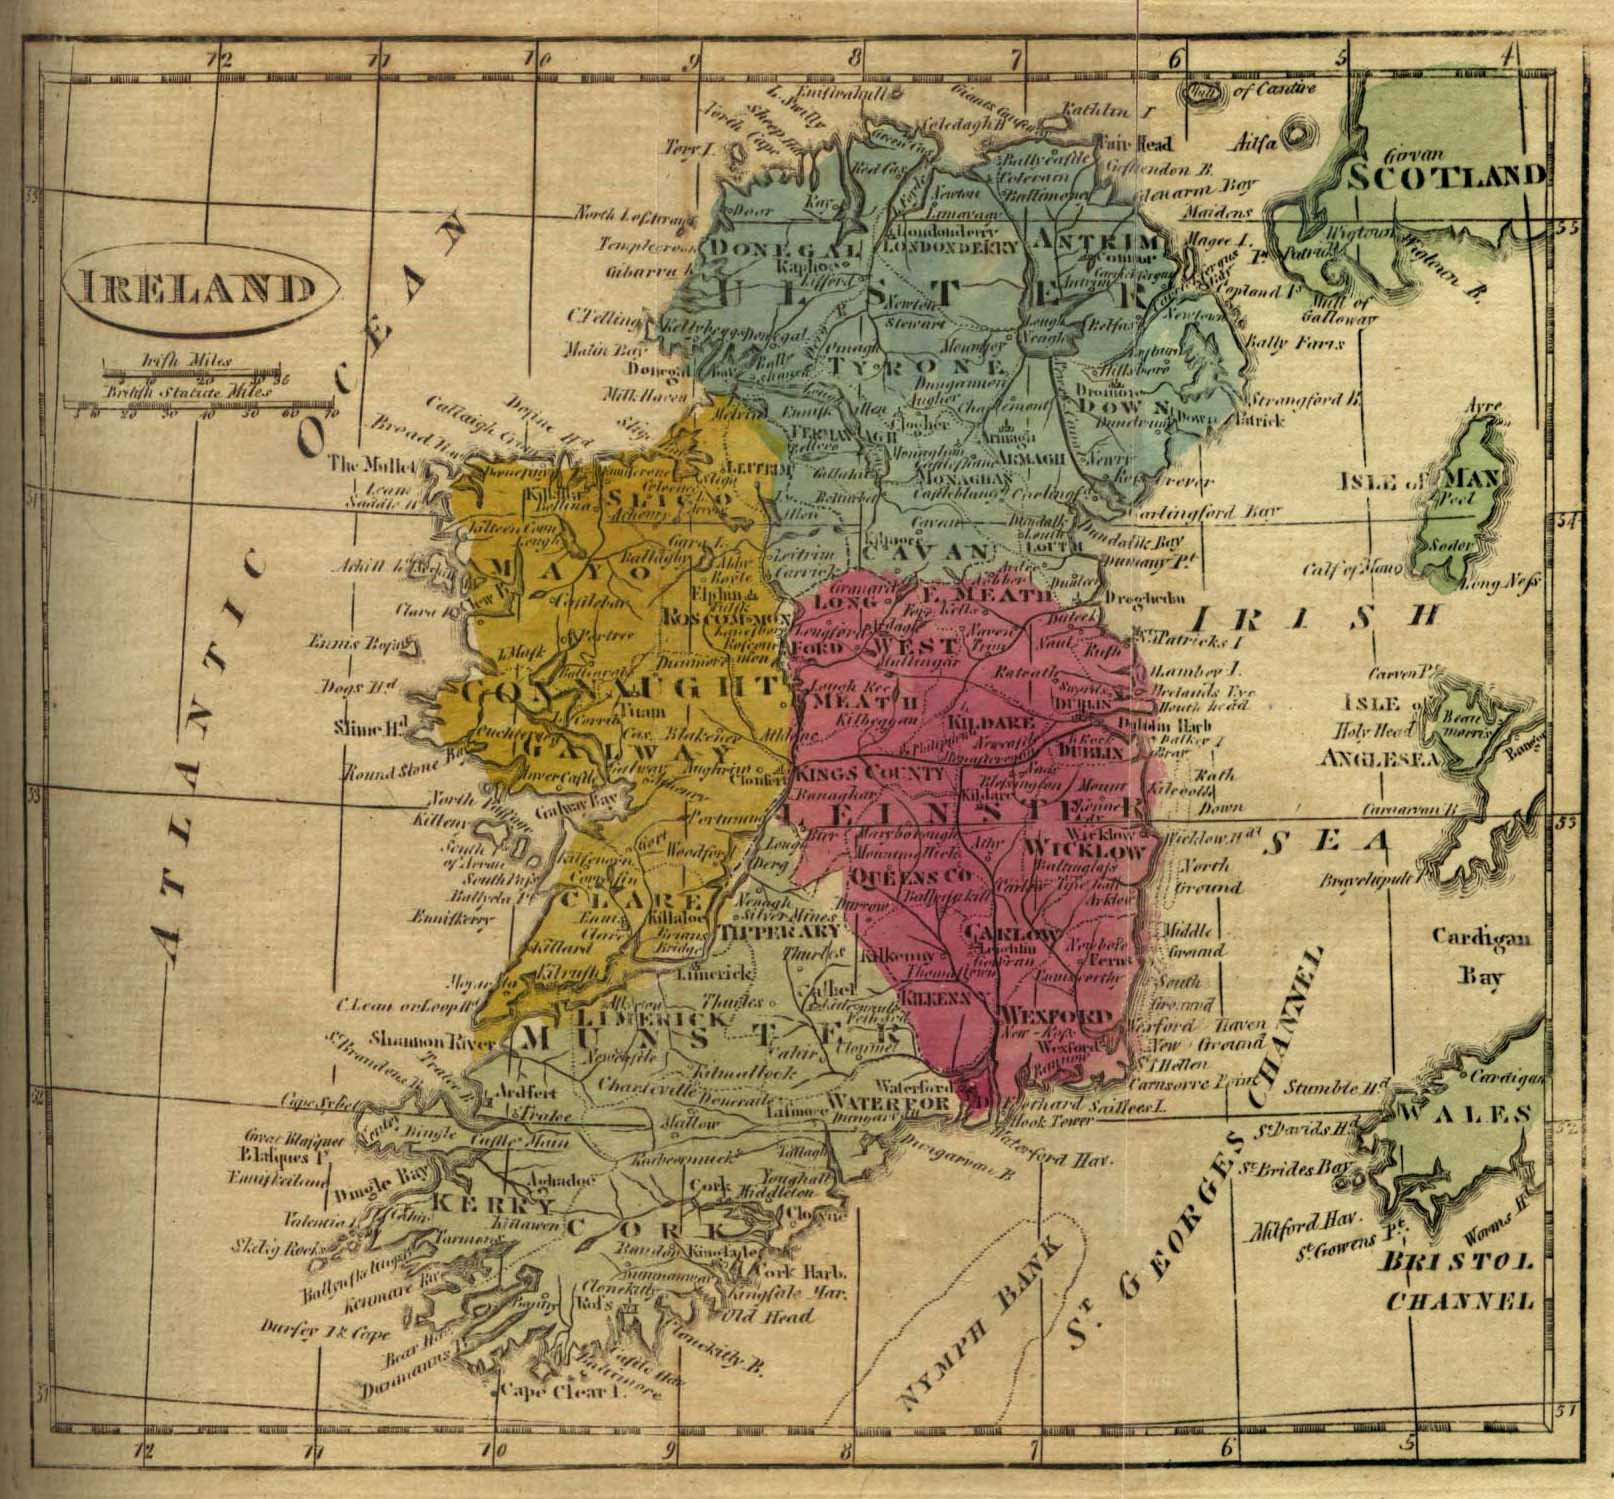 The irish ancestral research association tiara links map of ireland 1808 gumiabroncs Gallery